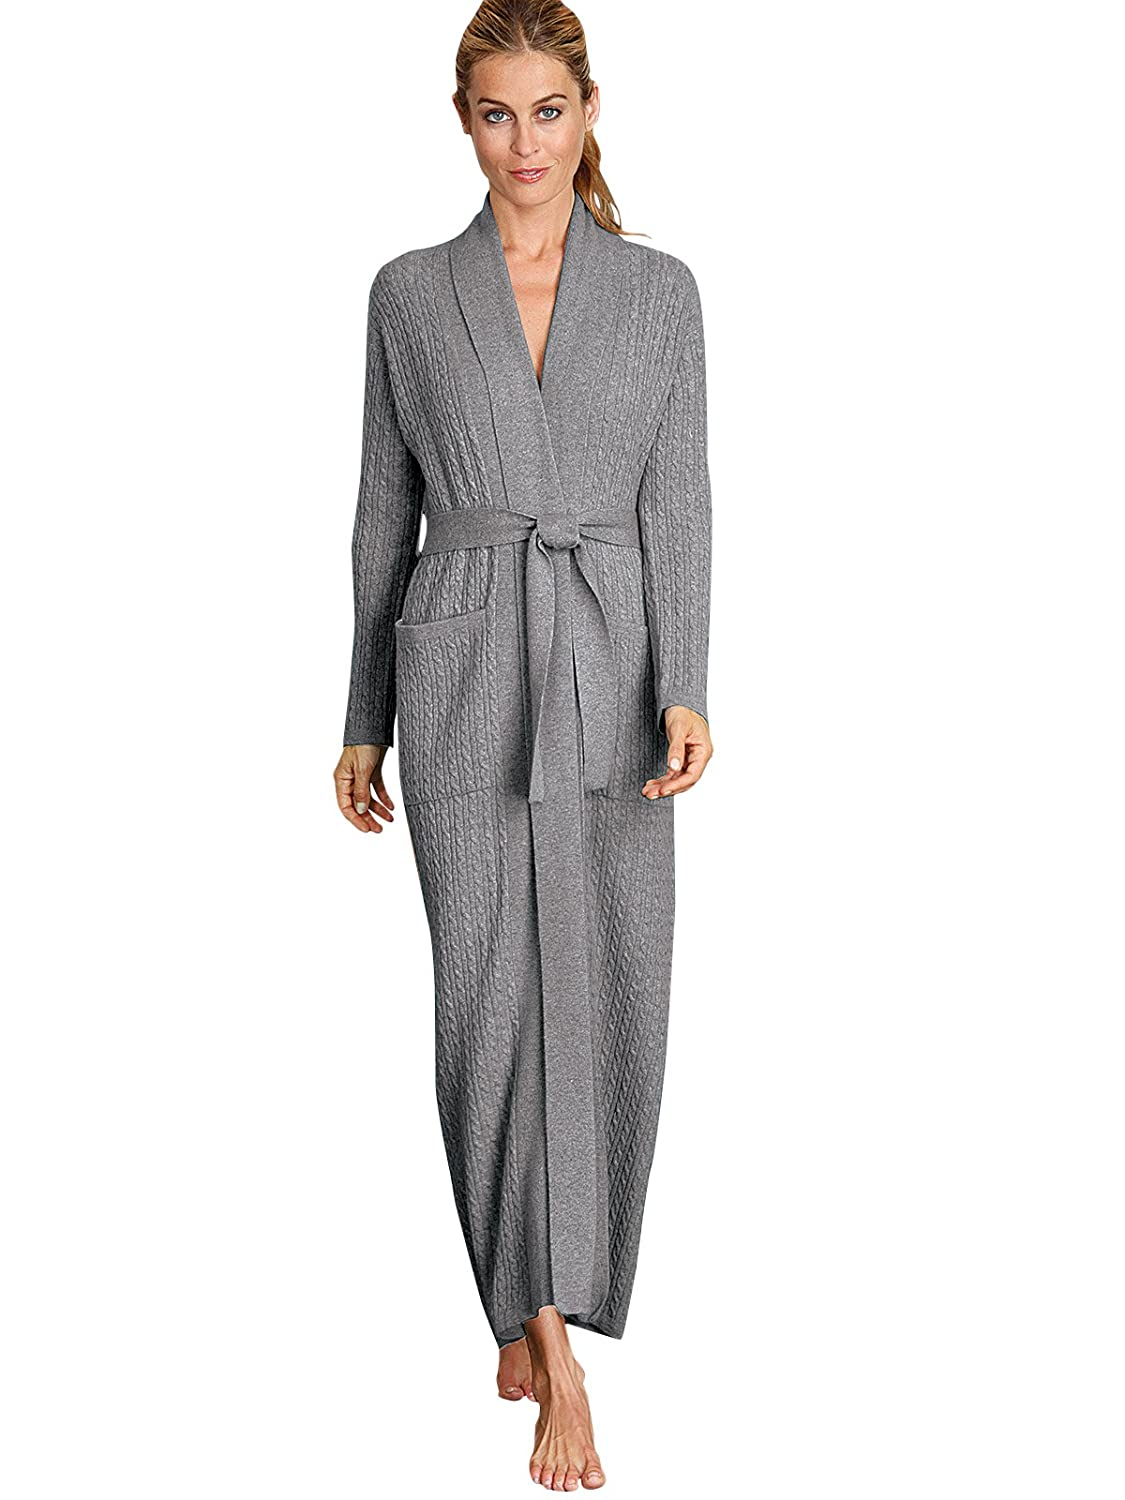 898083127f Schweitzer Linen Angie Cashmere Robe at Amazon Women s Clothing store